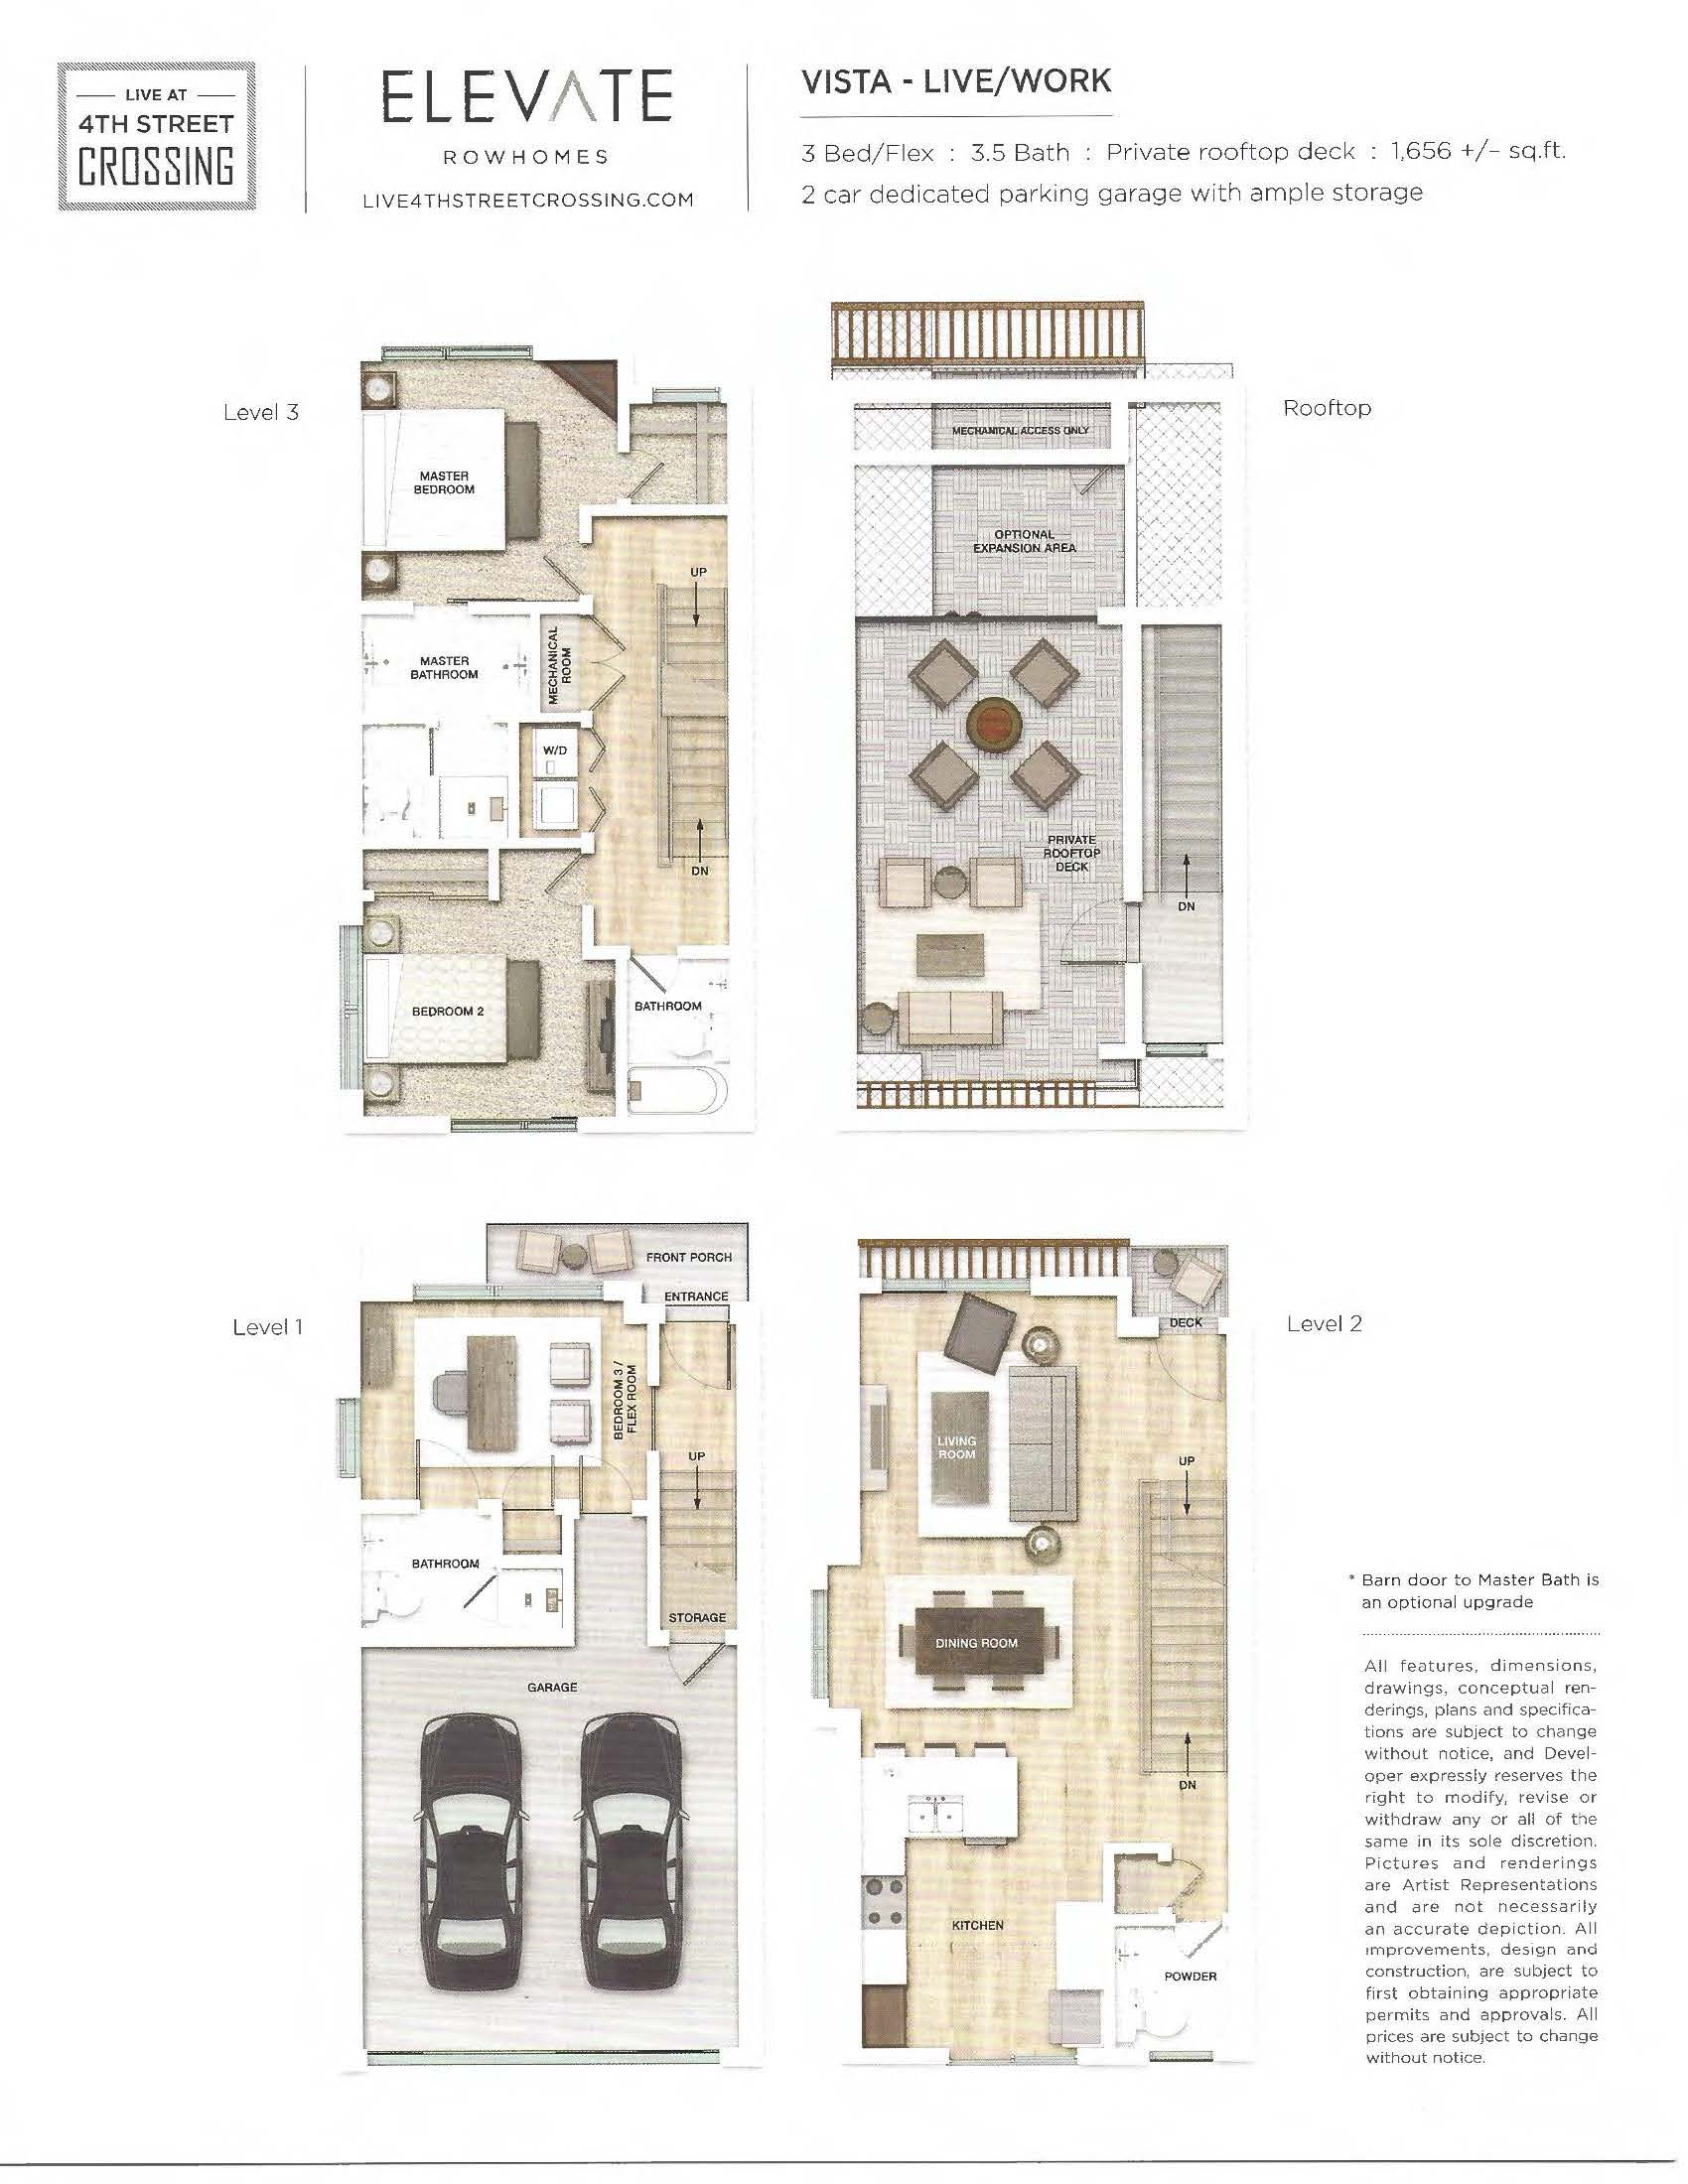 Fourth Street Crossing - Elevate Rowhomes - Vista Floorplan